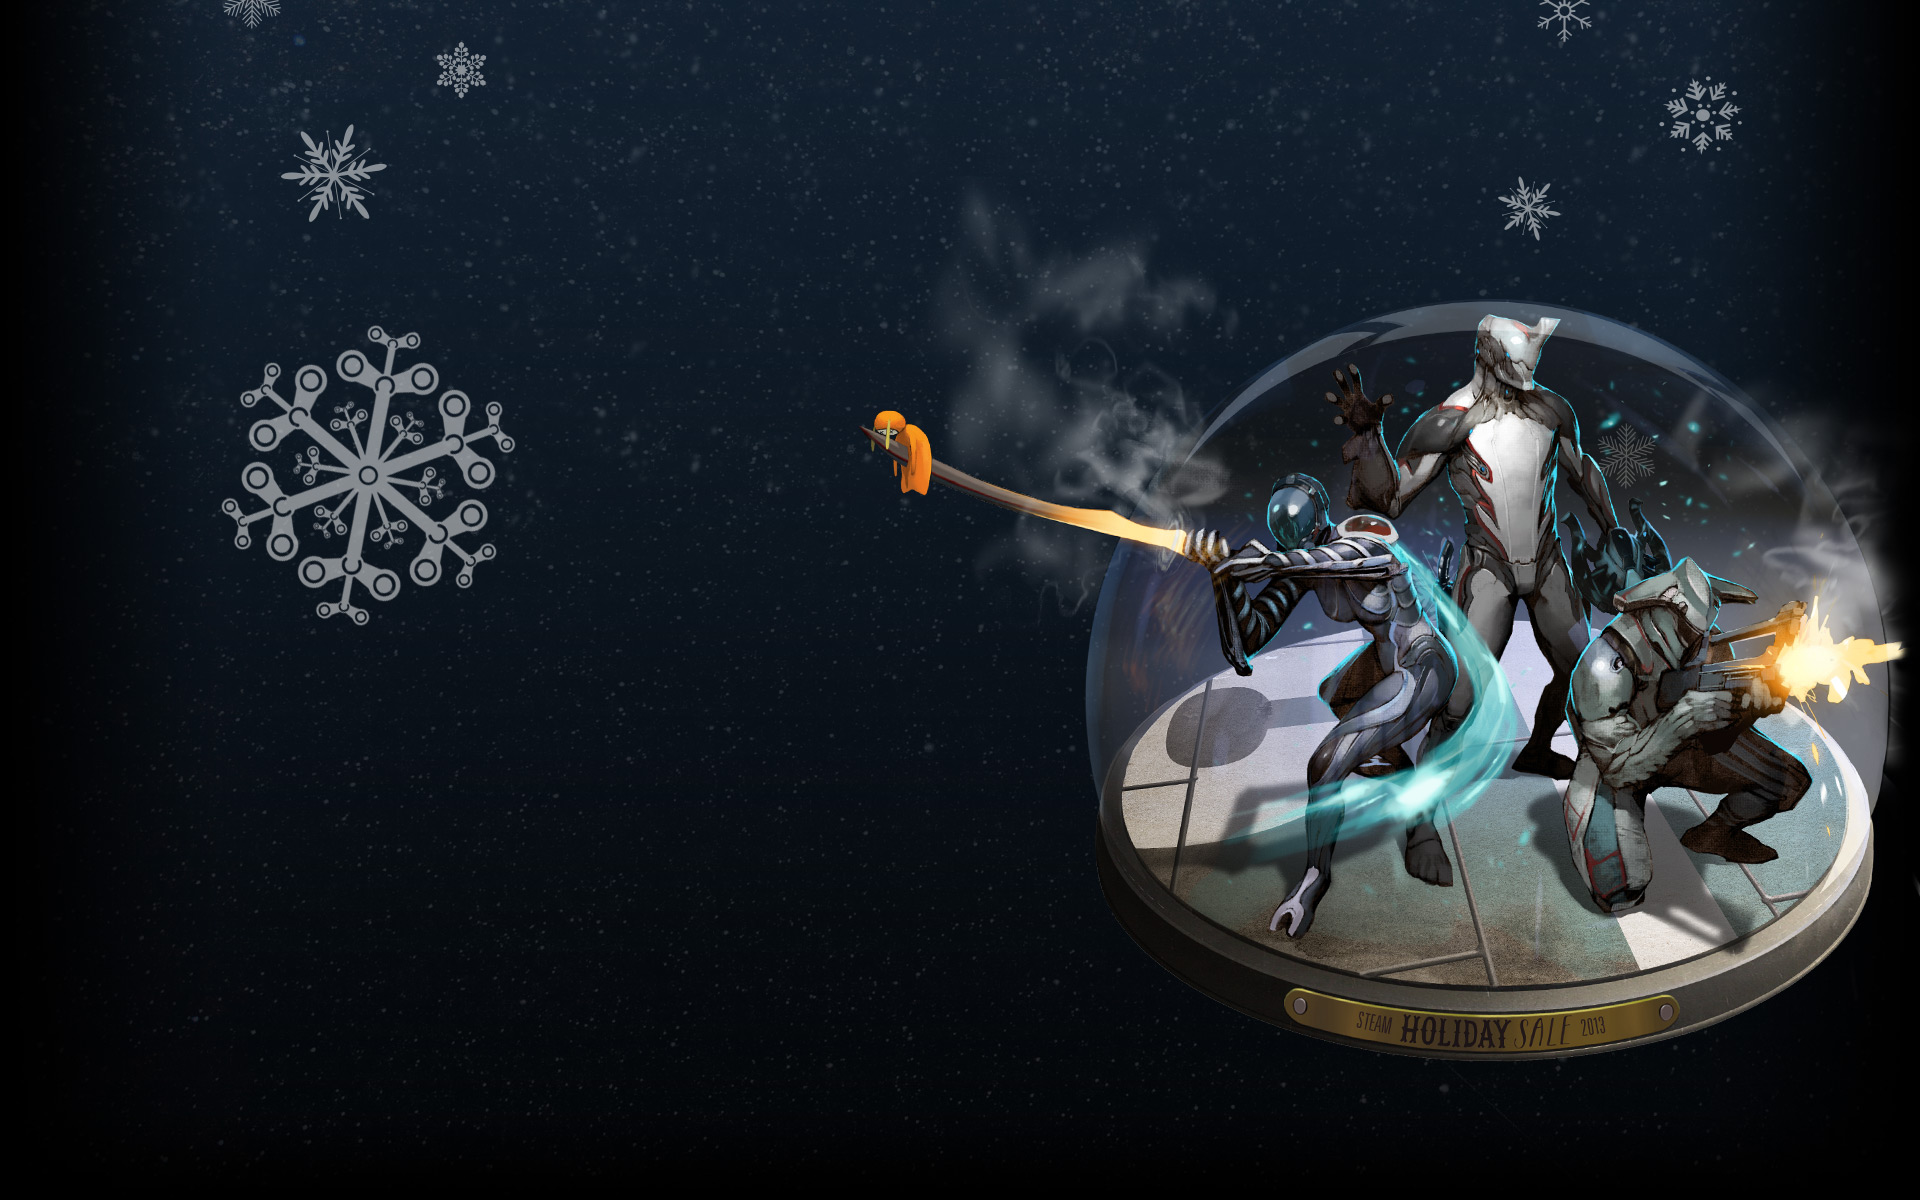 Holiday Sale 2013 High Quality Background on Wallpapers Vista